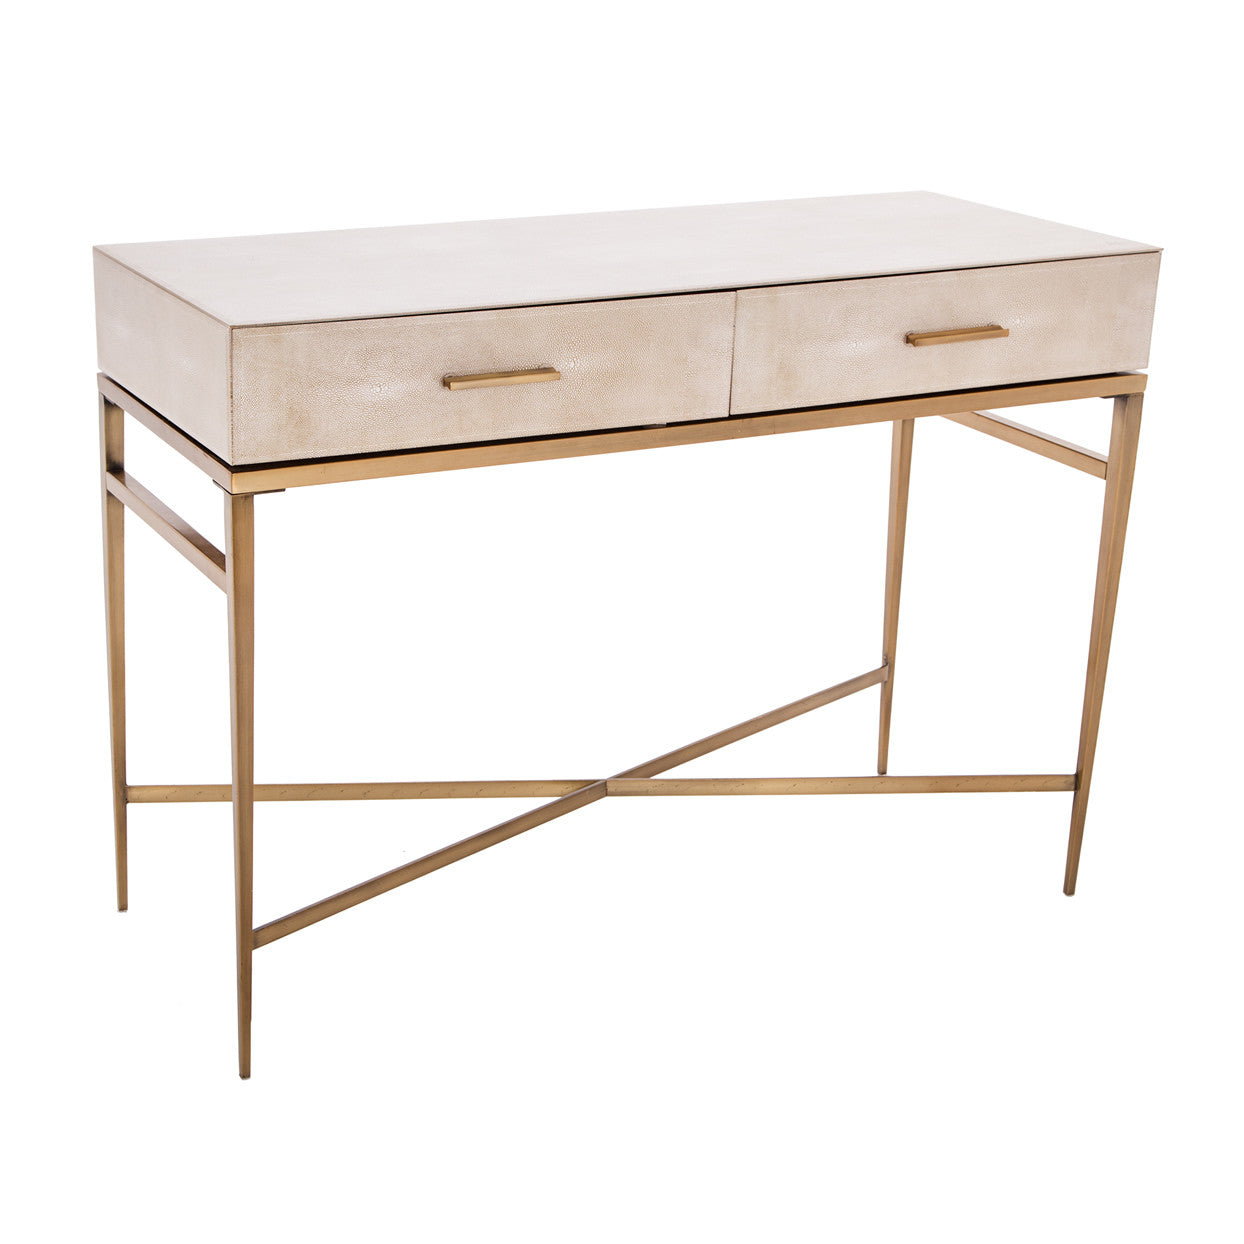 Lucile Taupe Shagreen Amp Gold Console Table Shropshire Design